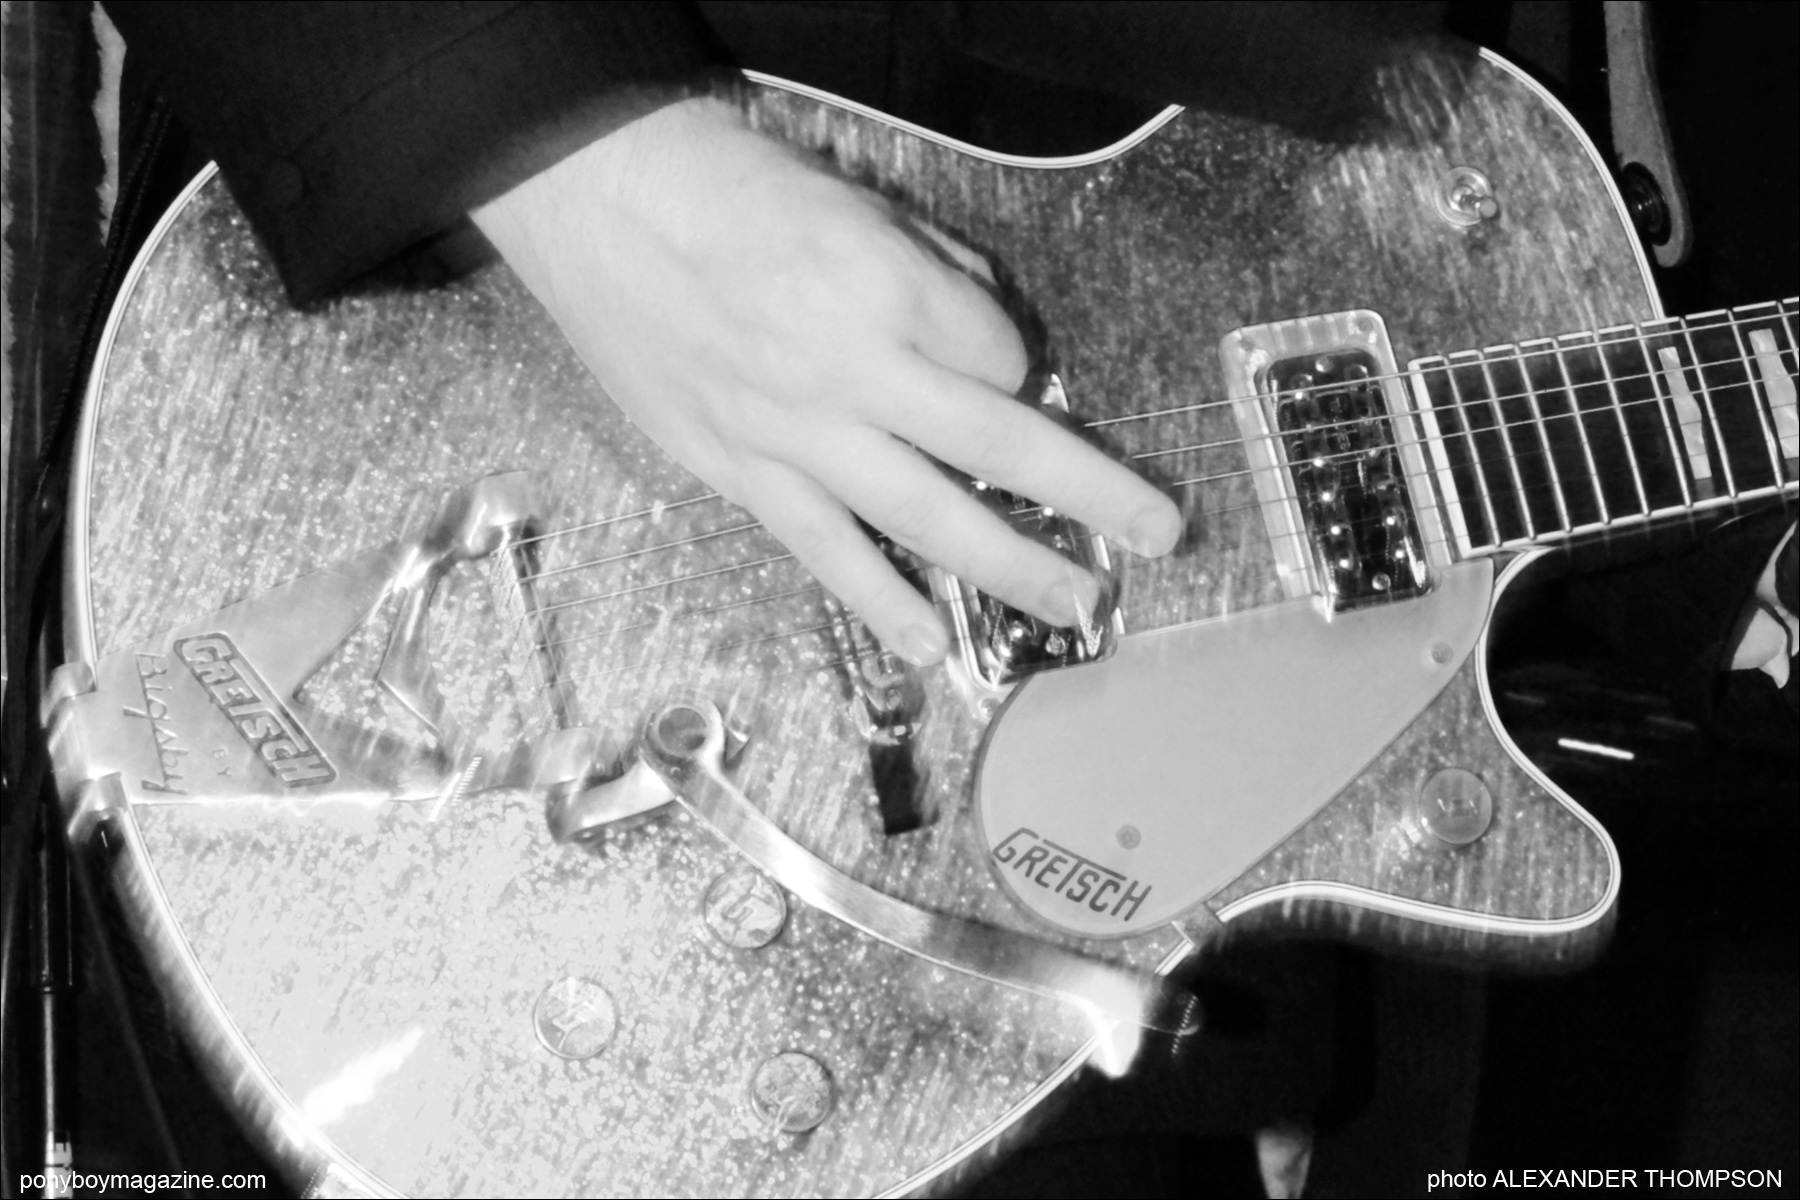 Grestsh guitar close-up from Furious band, photograhped by Alexander Thompson for Ponyboy Magazine in New York City.